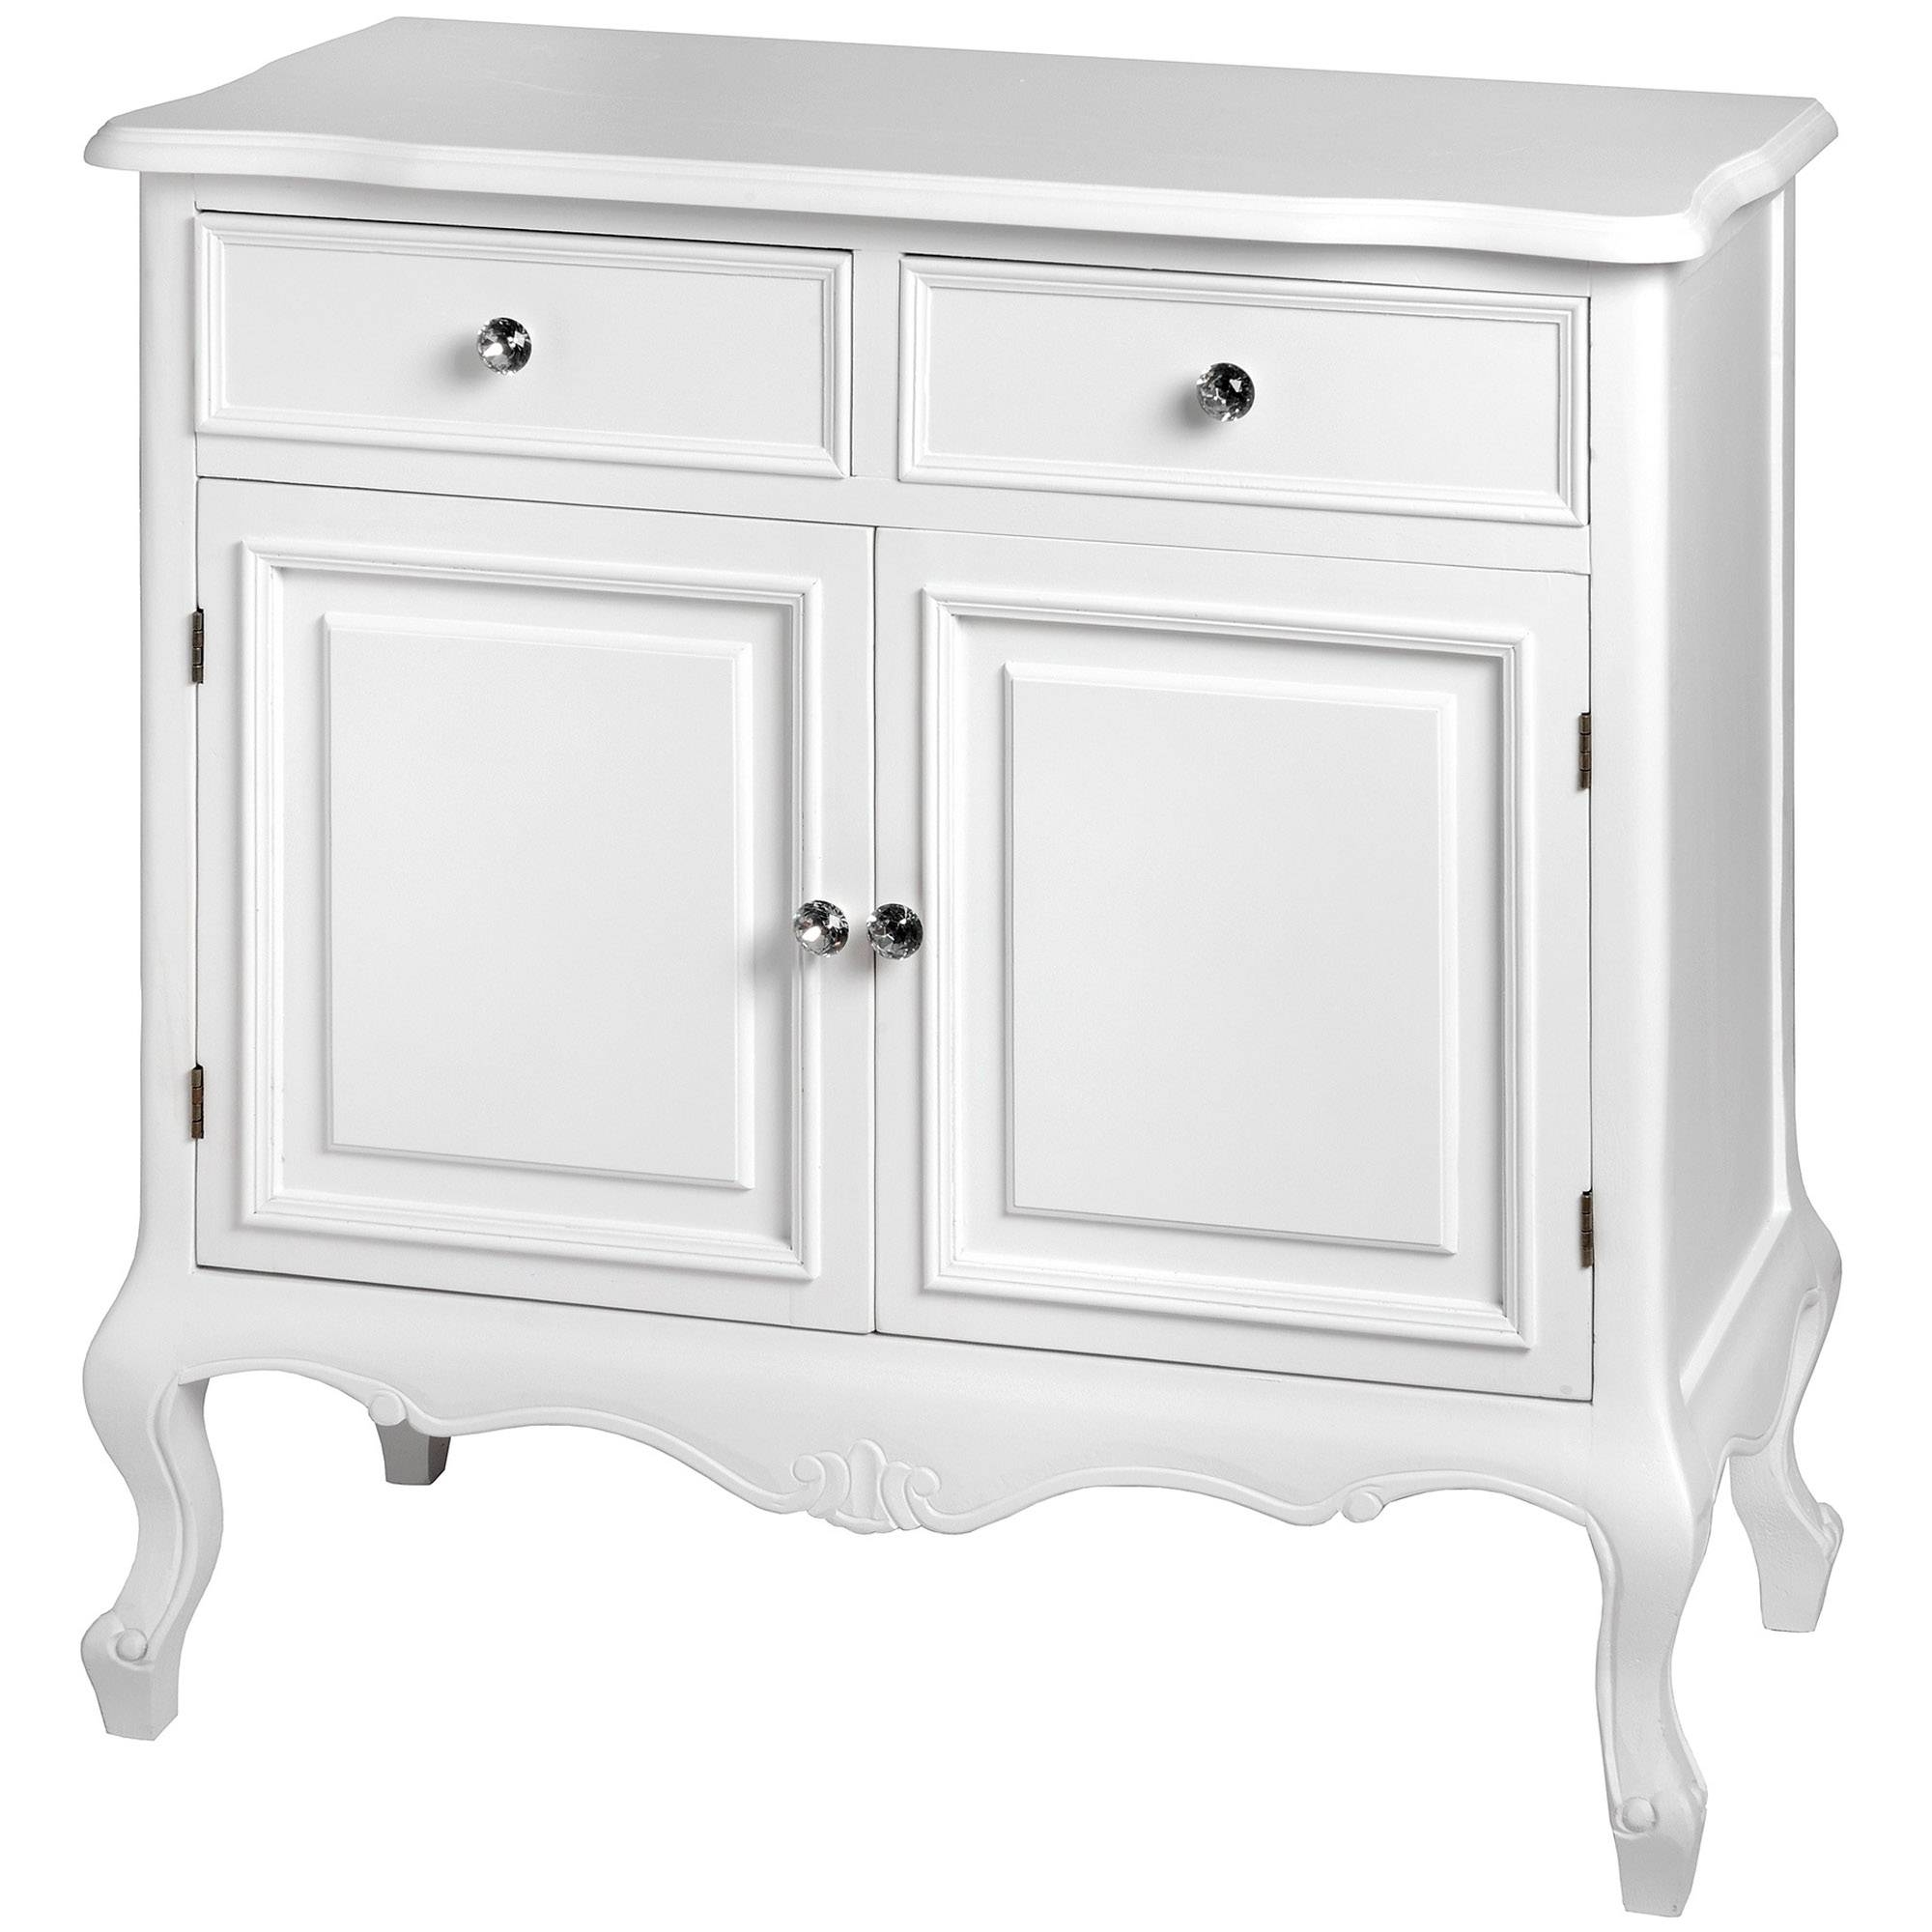 Fleur White 2 Drawer Shabby Chic Sideboard | Homesdirect365 In Current Shabby Chic Sideboards (#6 of 15)